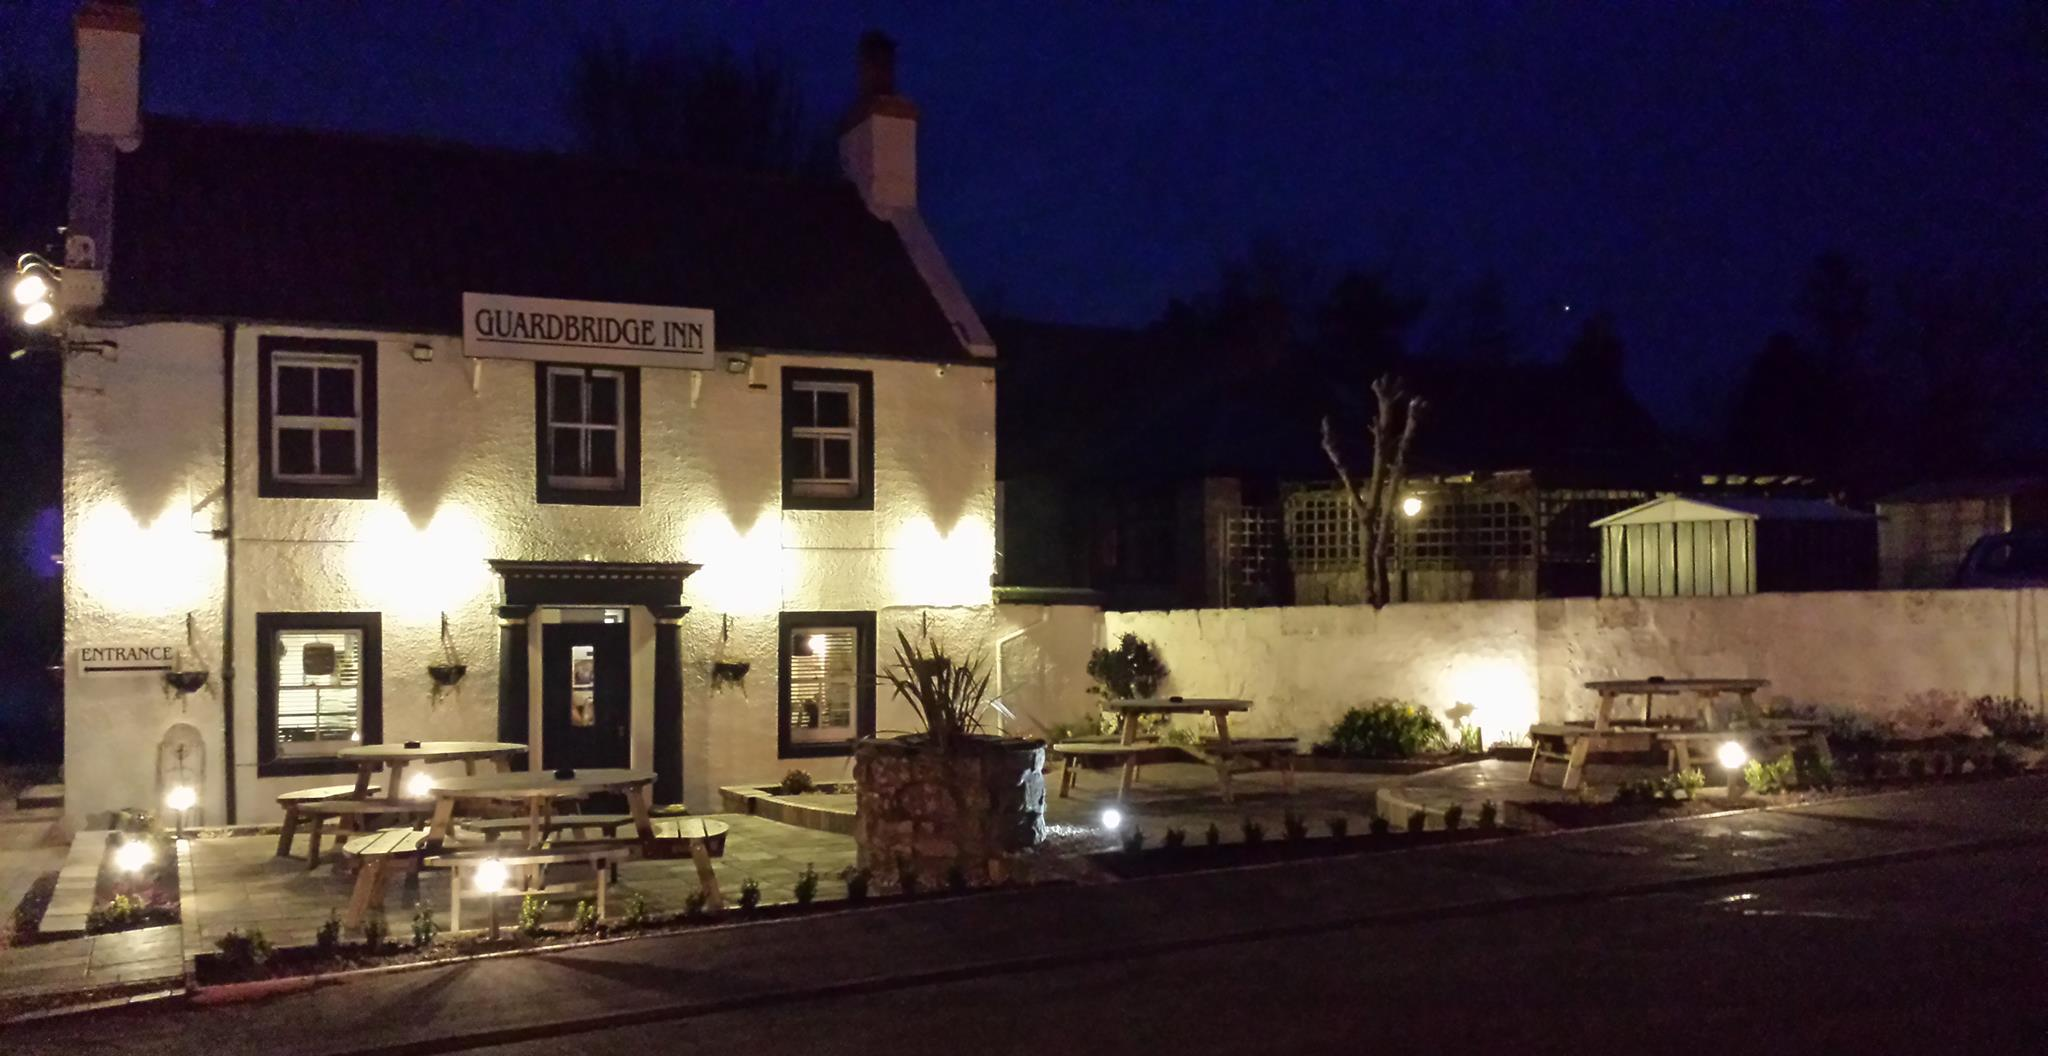 Exterior view of our inn at night